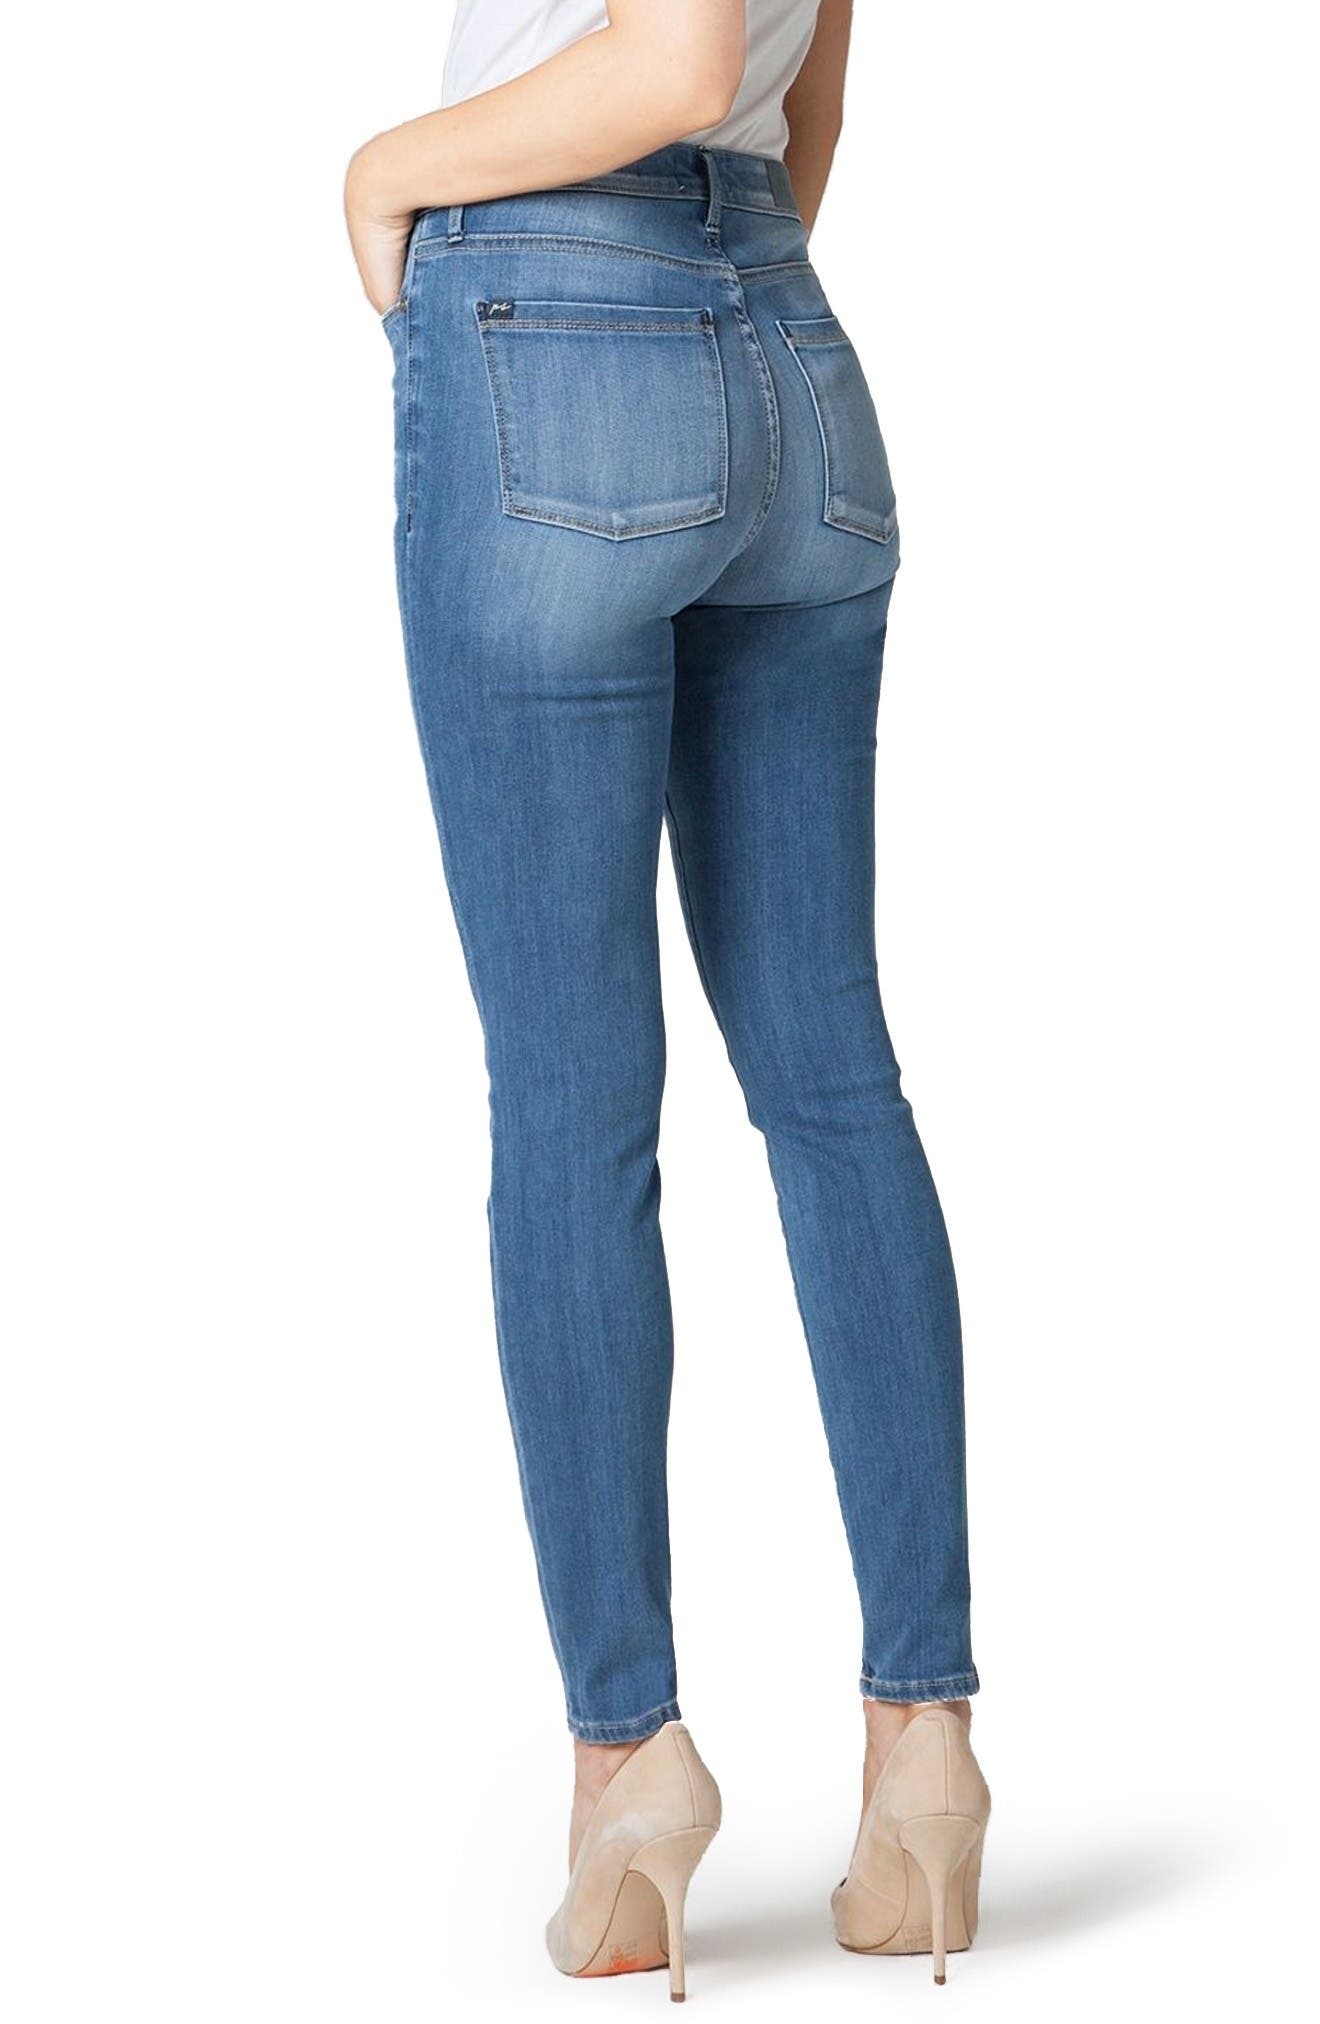 Bombshell High Waist Stretch Skinny Jeans,                             Alternate thumbnail 2, color,                             Gulf Stream